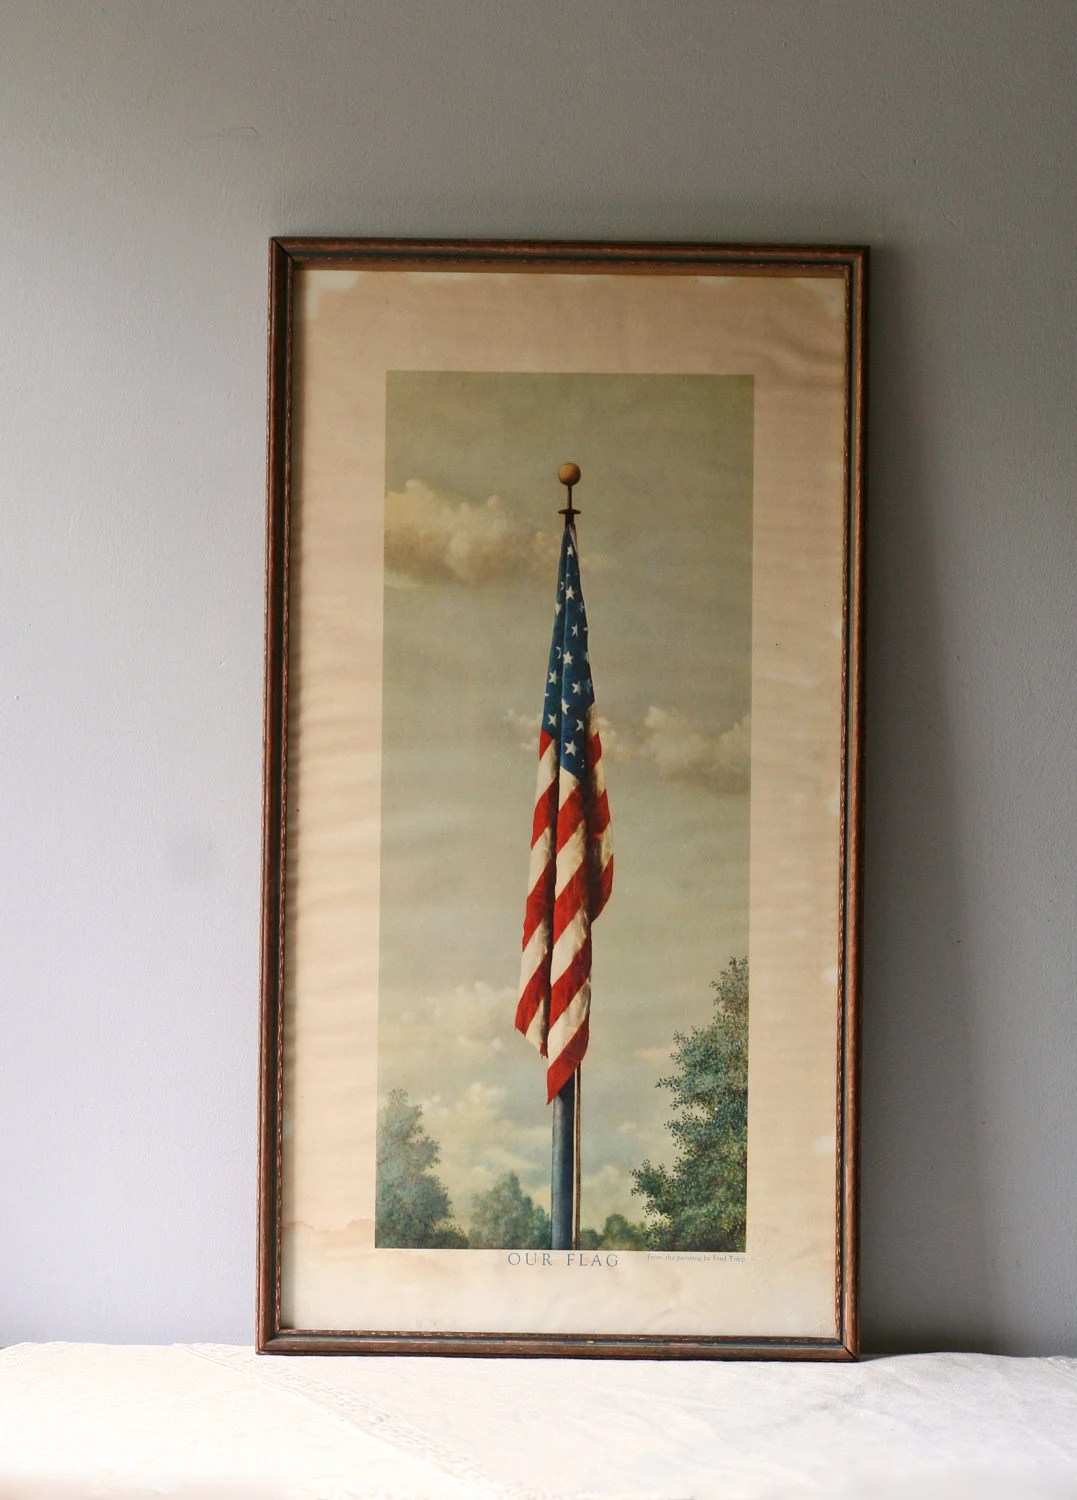 Wall Mirror No Frame Vintage Litho Of American Flag Framed By Modishvintage On Etsy